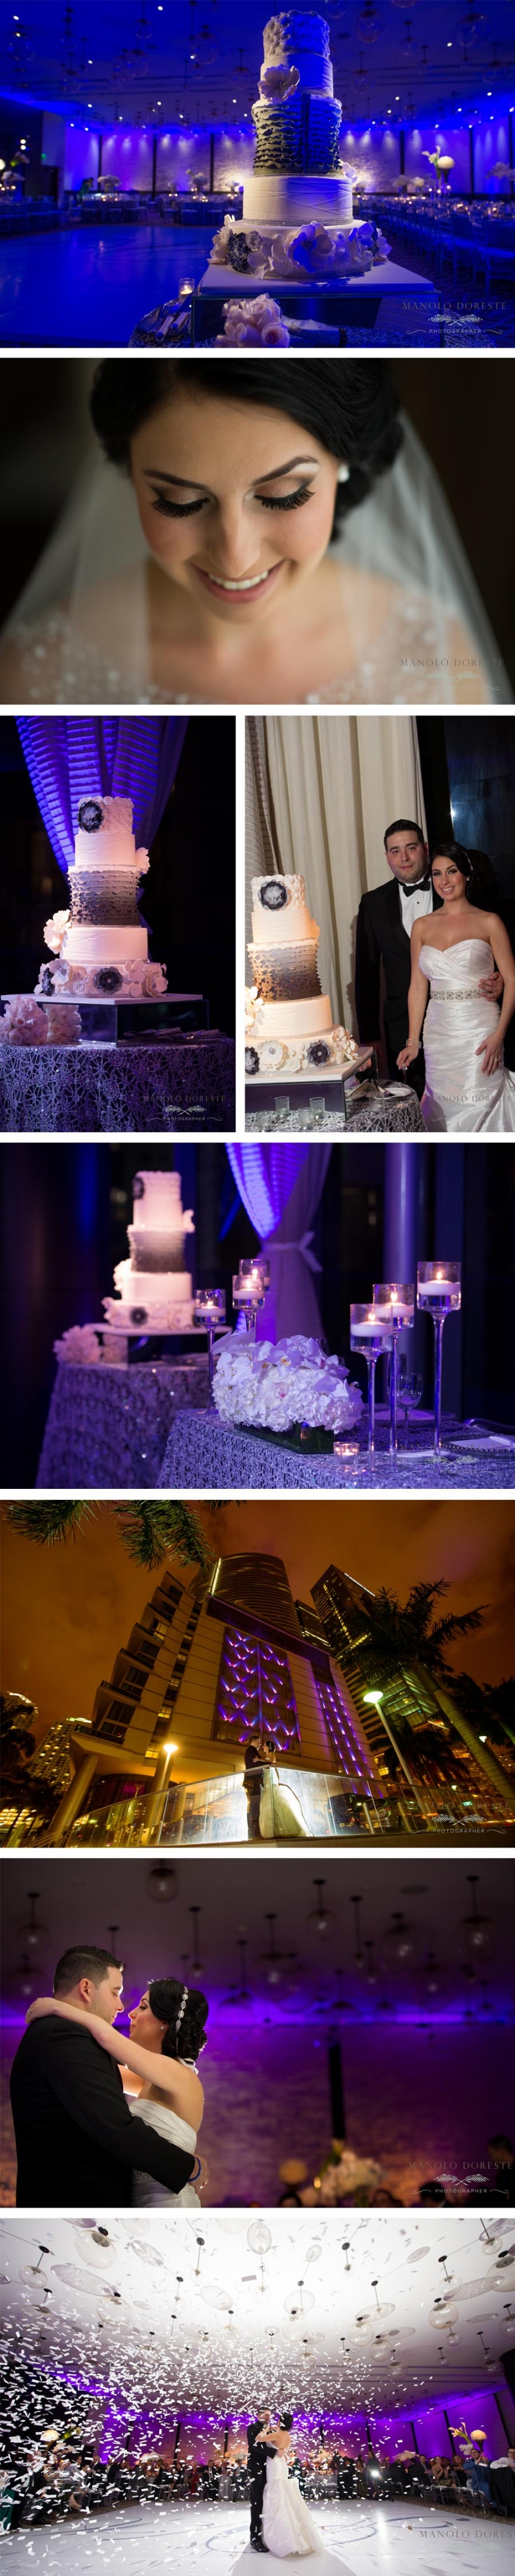 wedding-reception-ideas-2-04232014nz